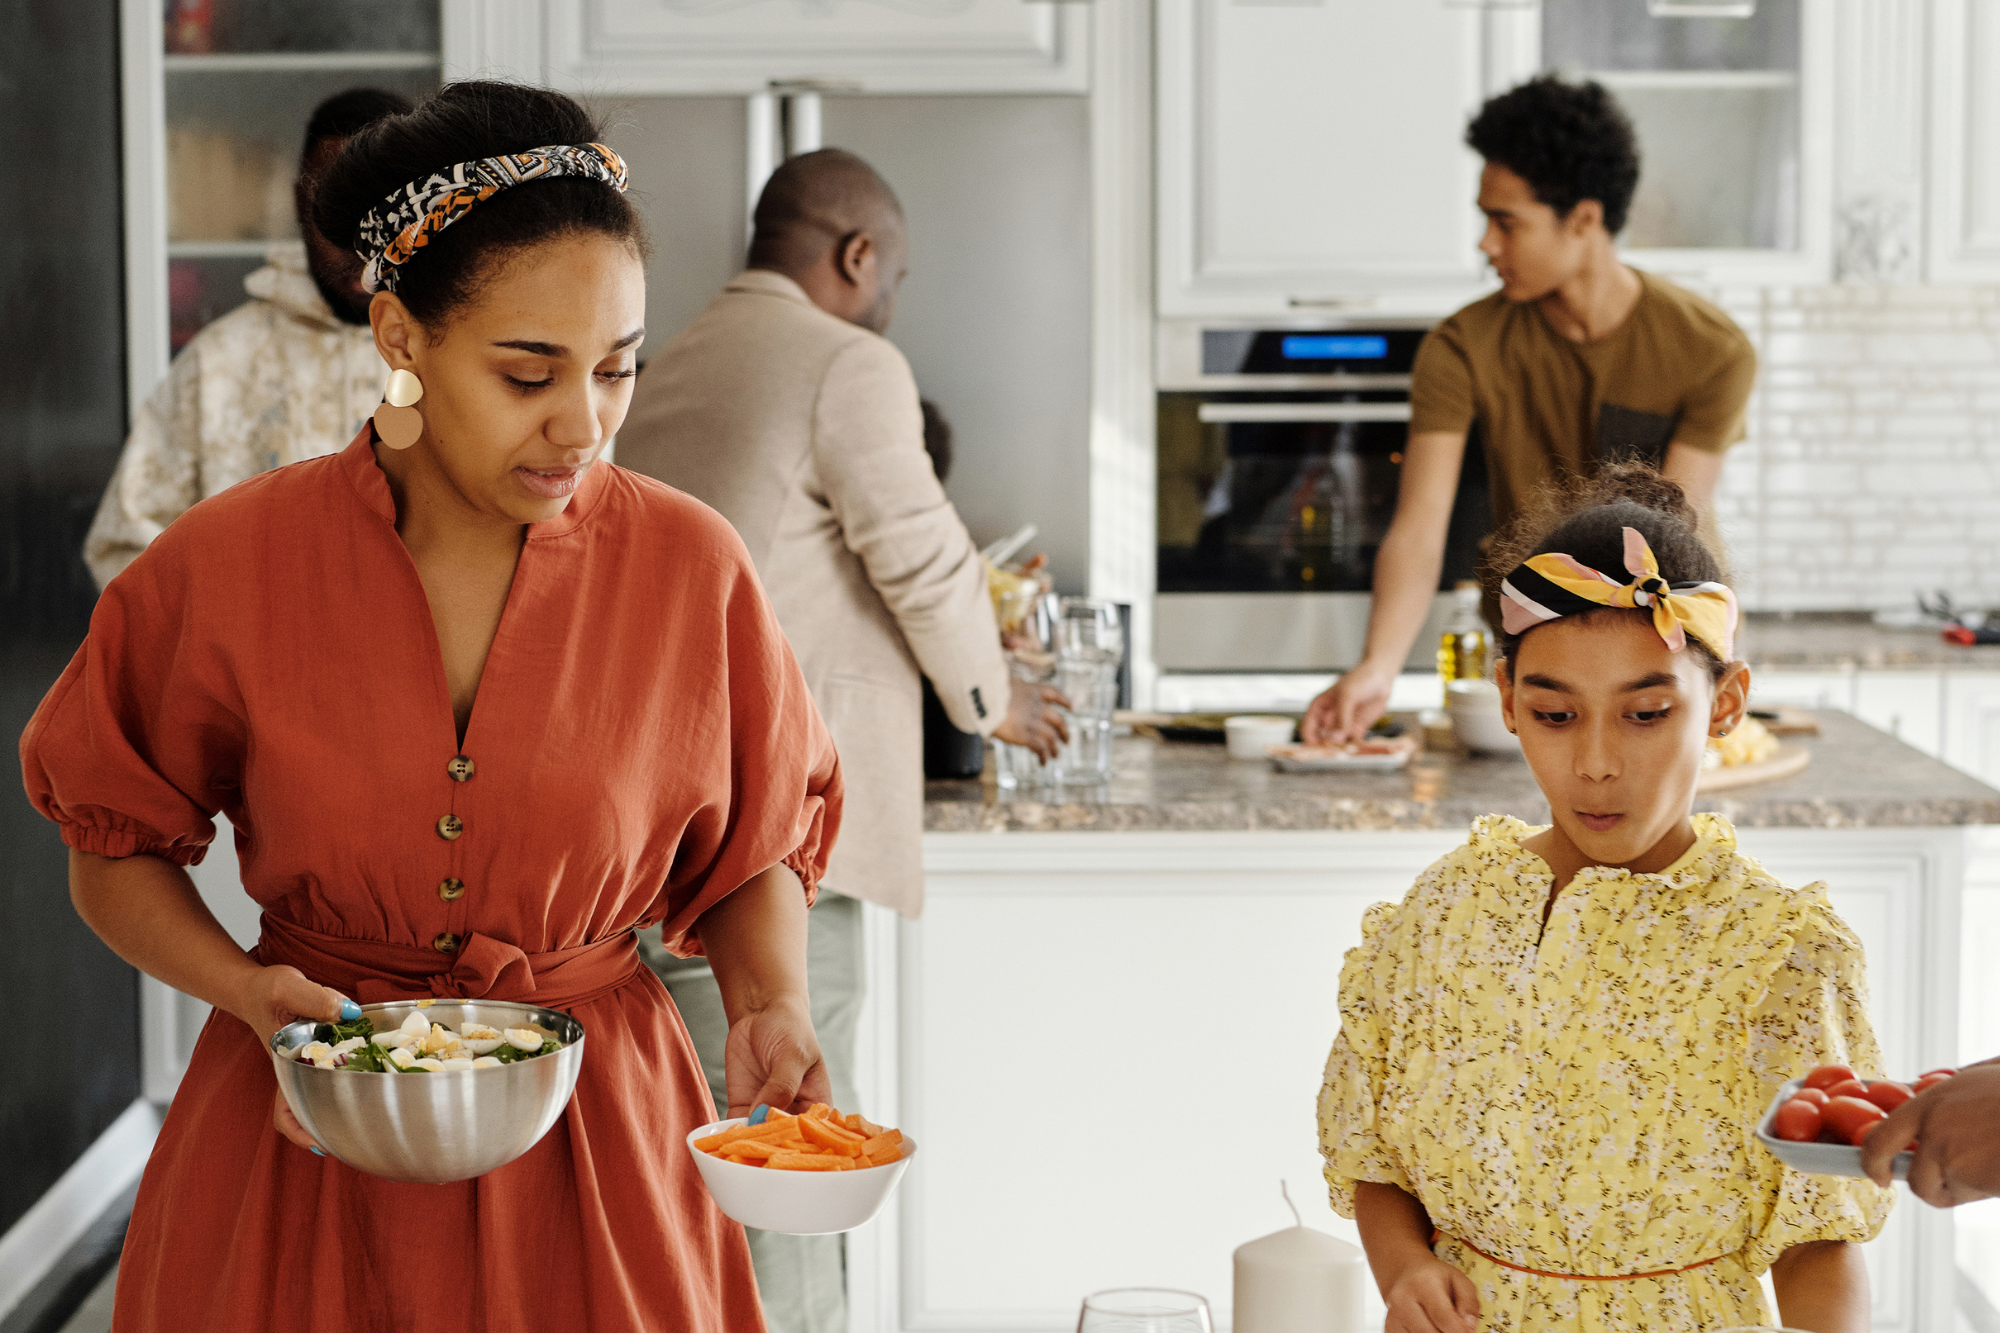 5 Reasons Your Family Needs a Daily Routine